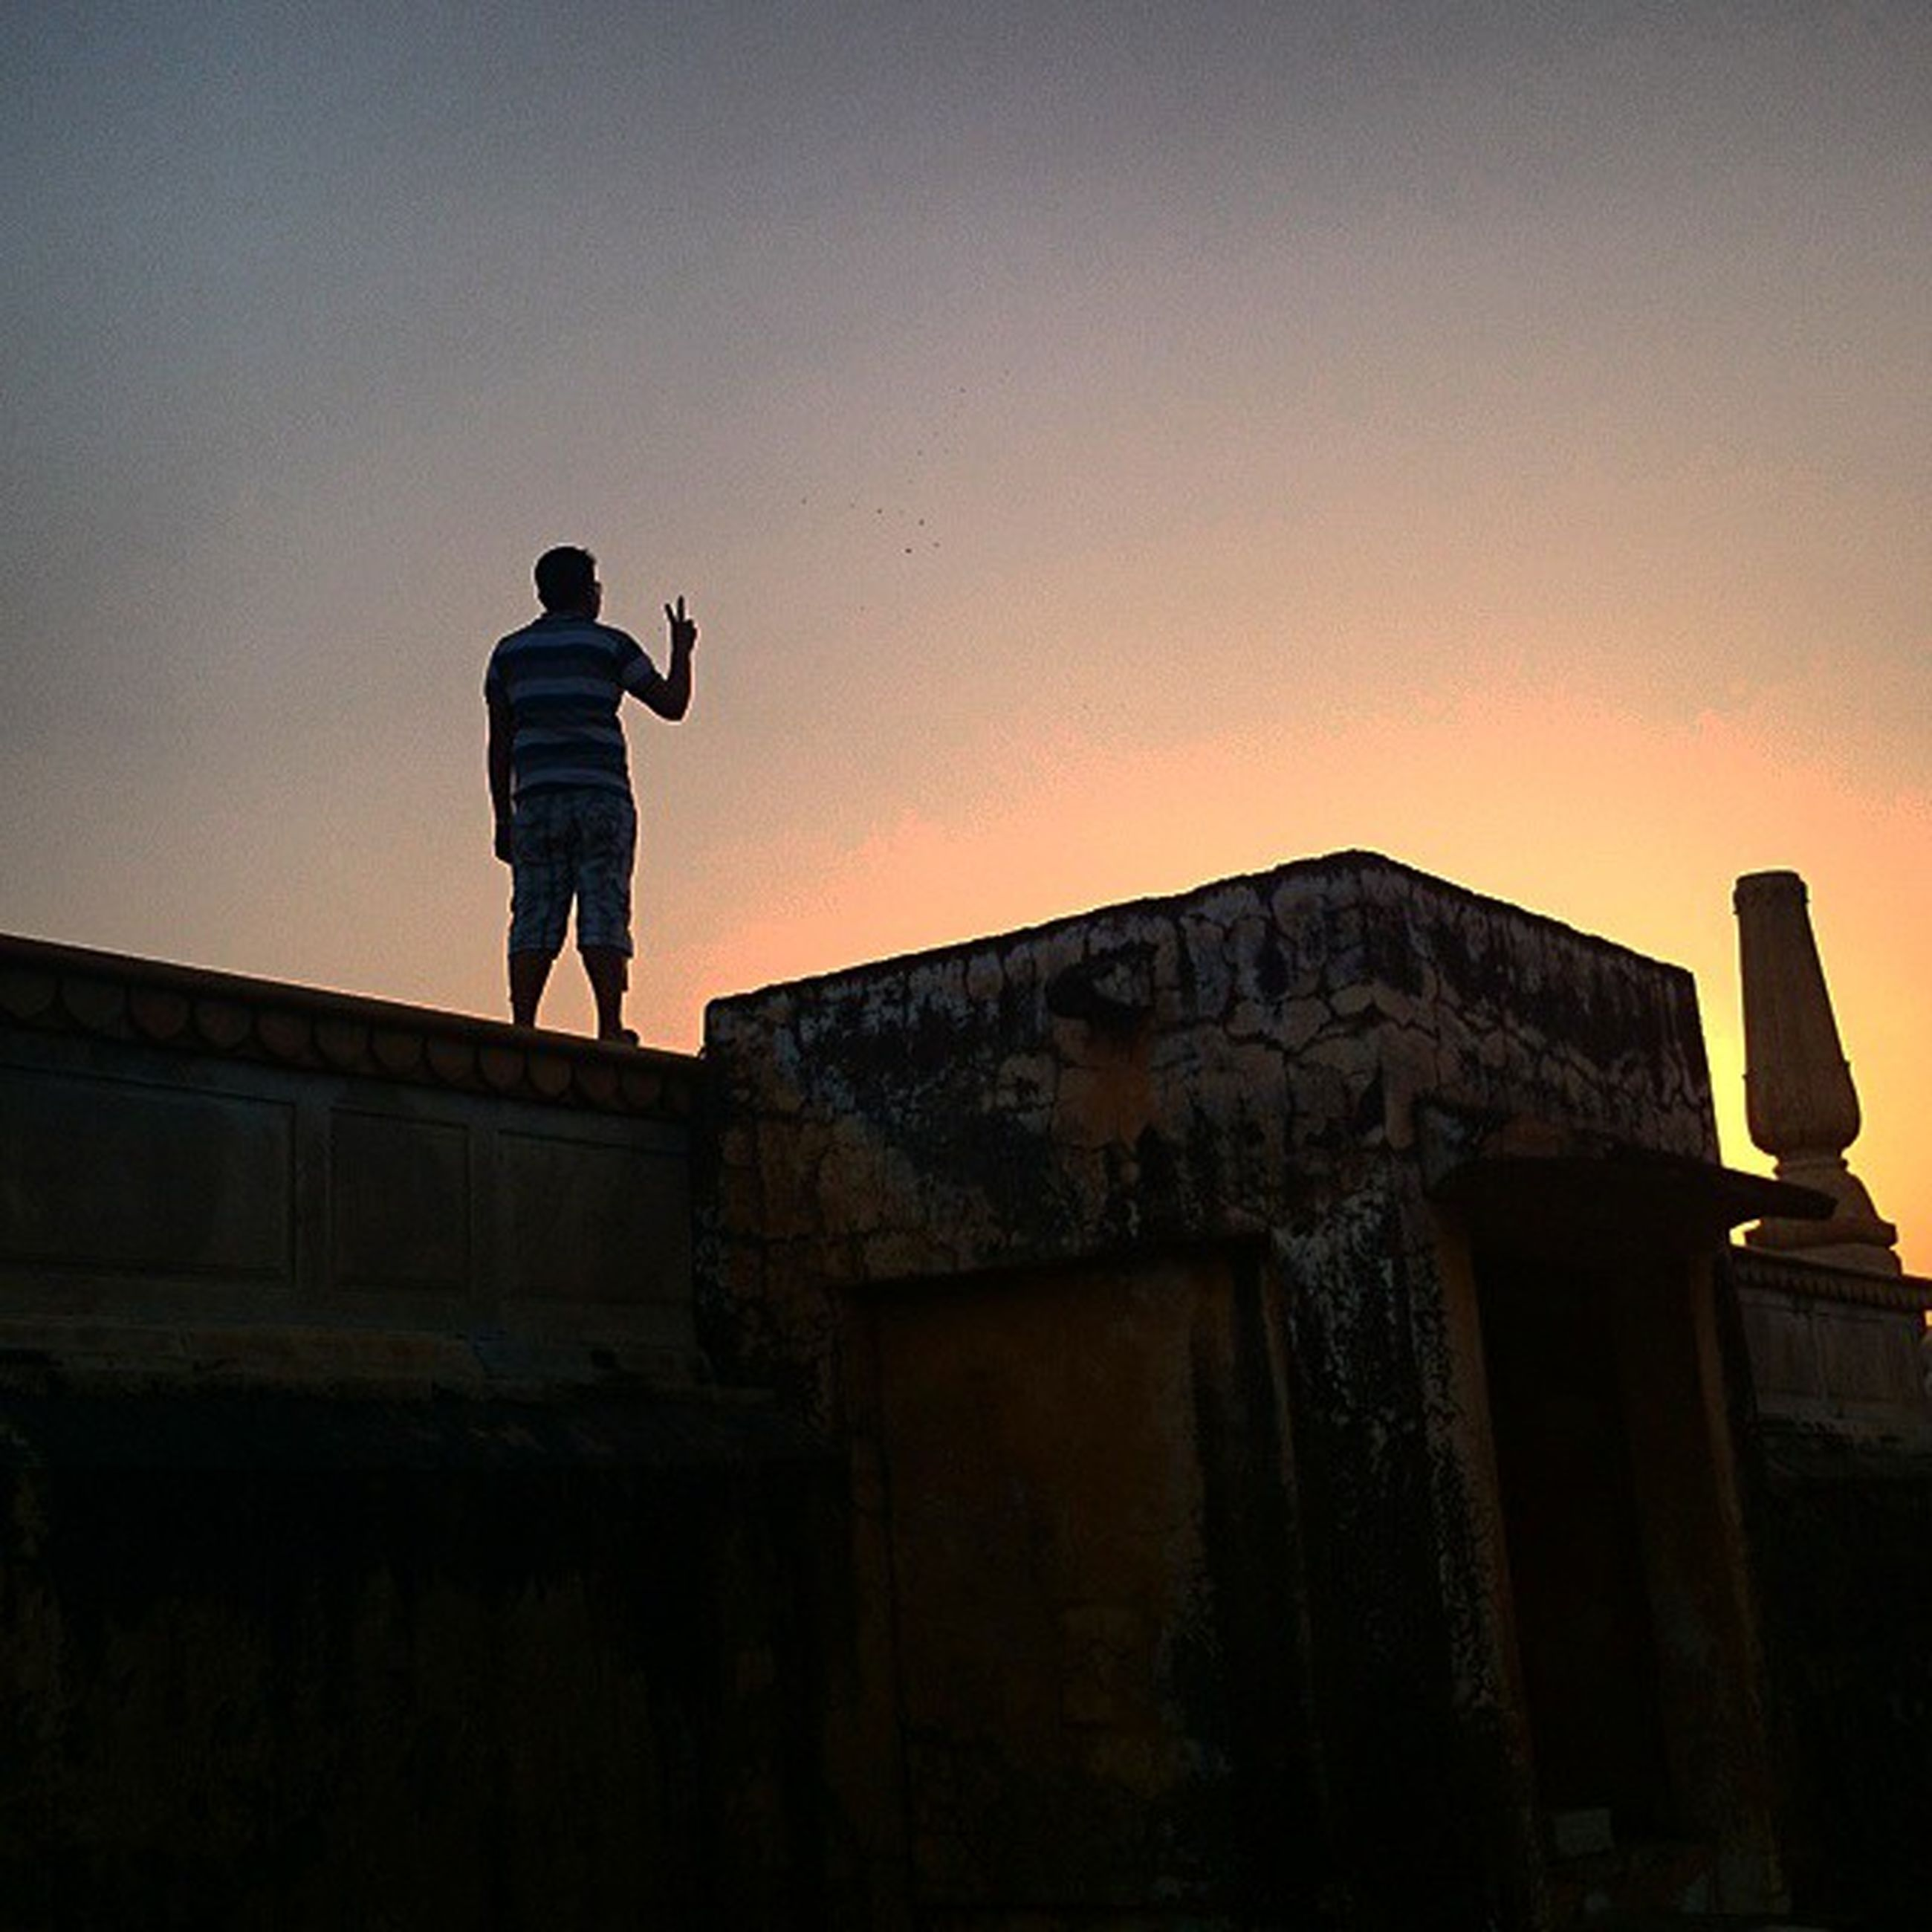 architecture, full length, built structure, building exterior, lifestyles, standing, copy space, leisure activity, clear sky, men, low angle view, casual clothing, silhouette, sunset, sky, rear view, walking, outdoors